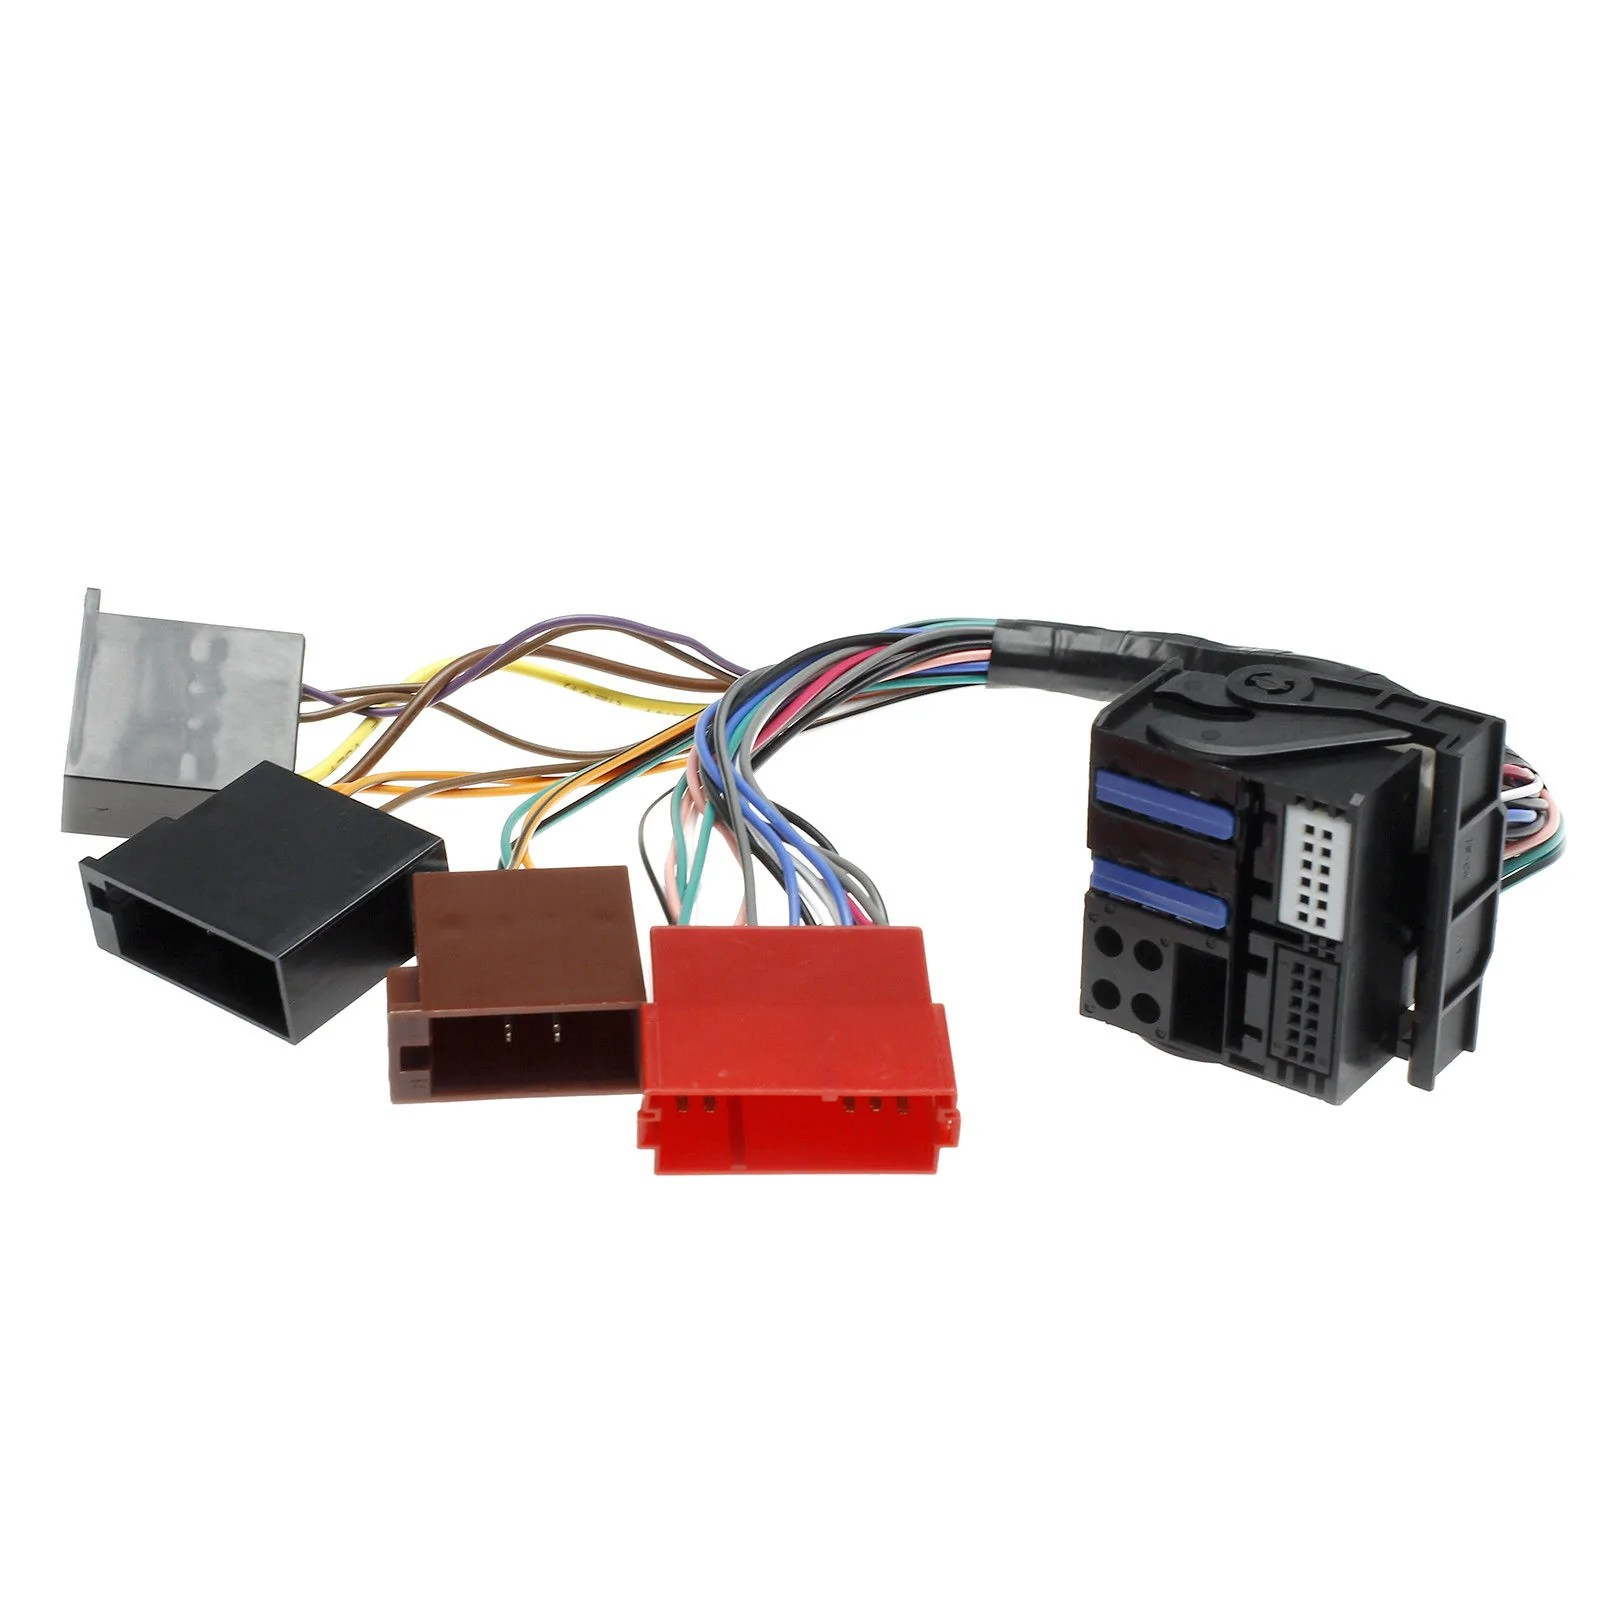 hight resolution of adapter wire harness for volkswagen vw premium 5 to premium 6 audi navigation plus rnse